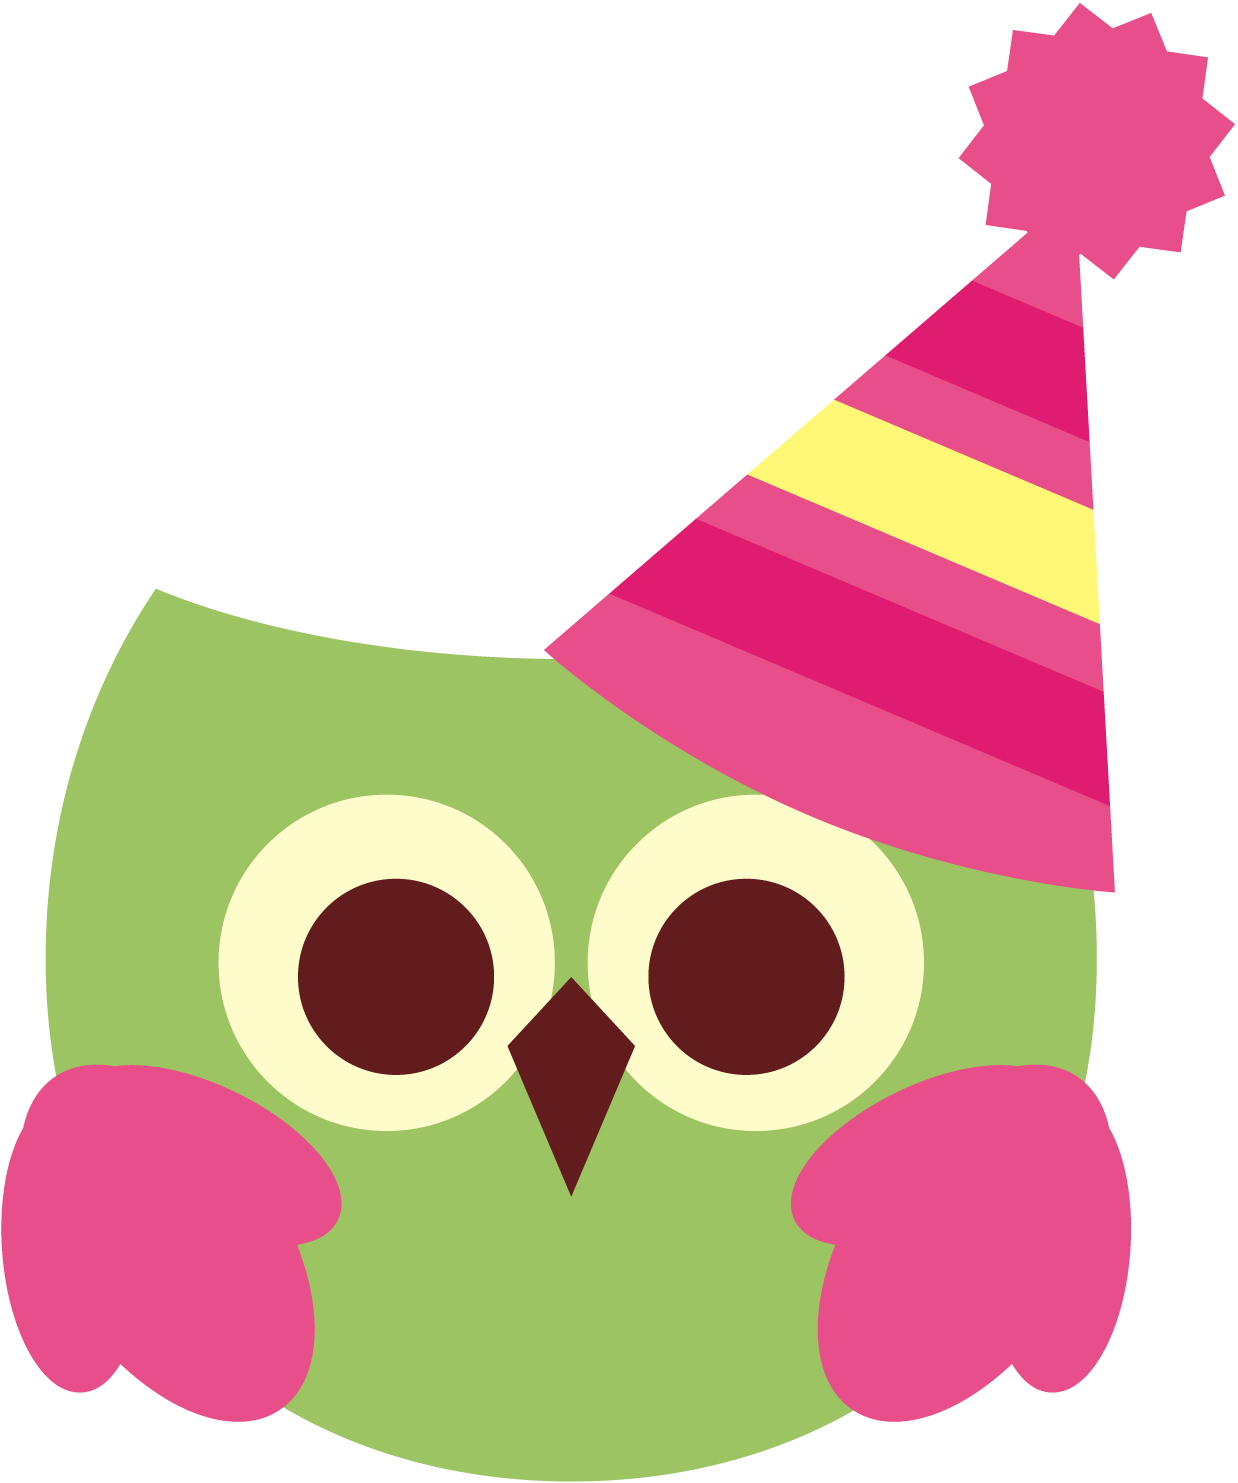 Birthday owls clipart picture freeuse library Cute birthday owl free clipart | revidevi.wordpress.com picture freeuse library